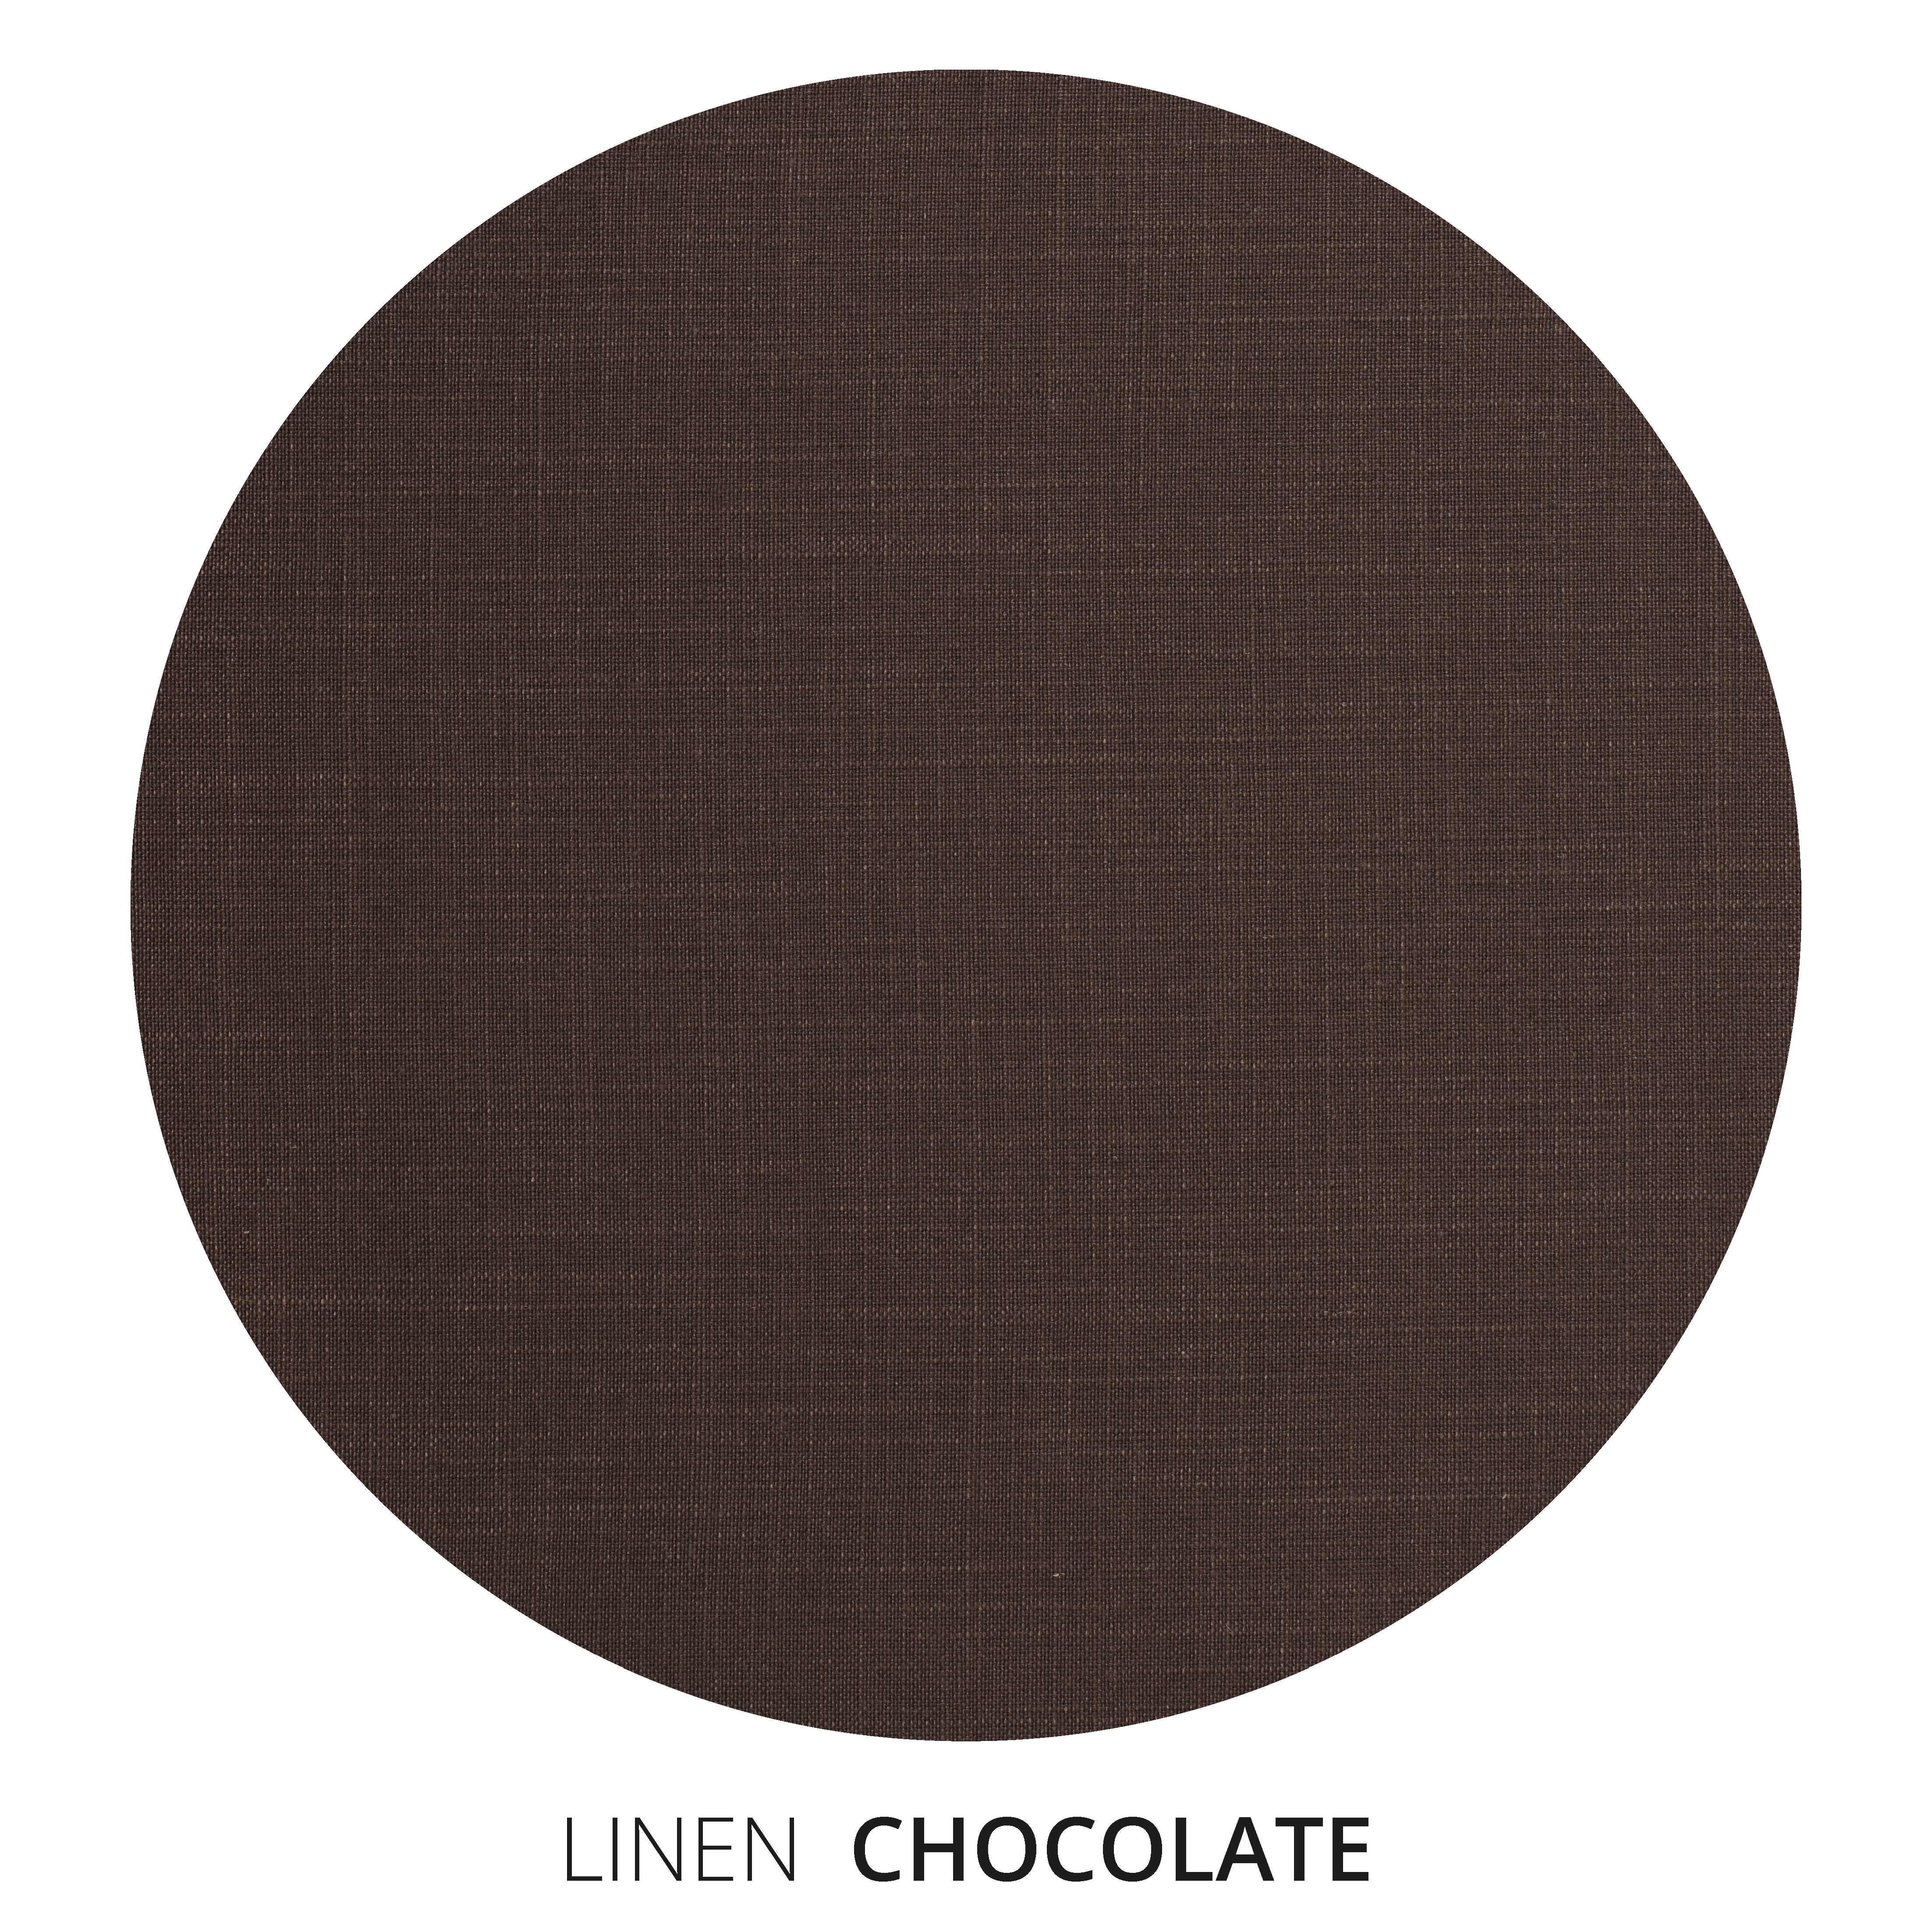 Chocolate Linen Swatch